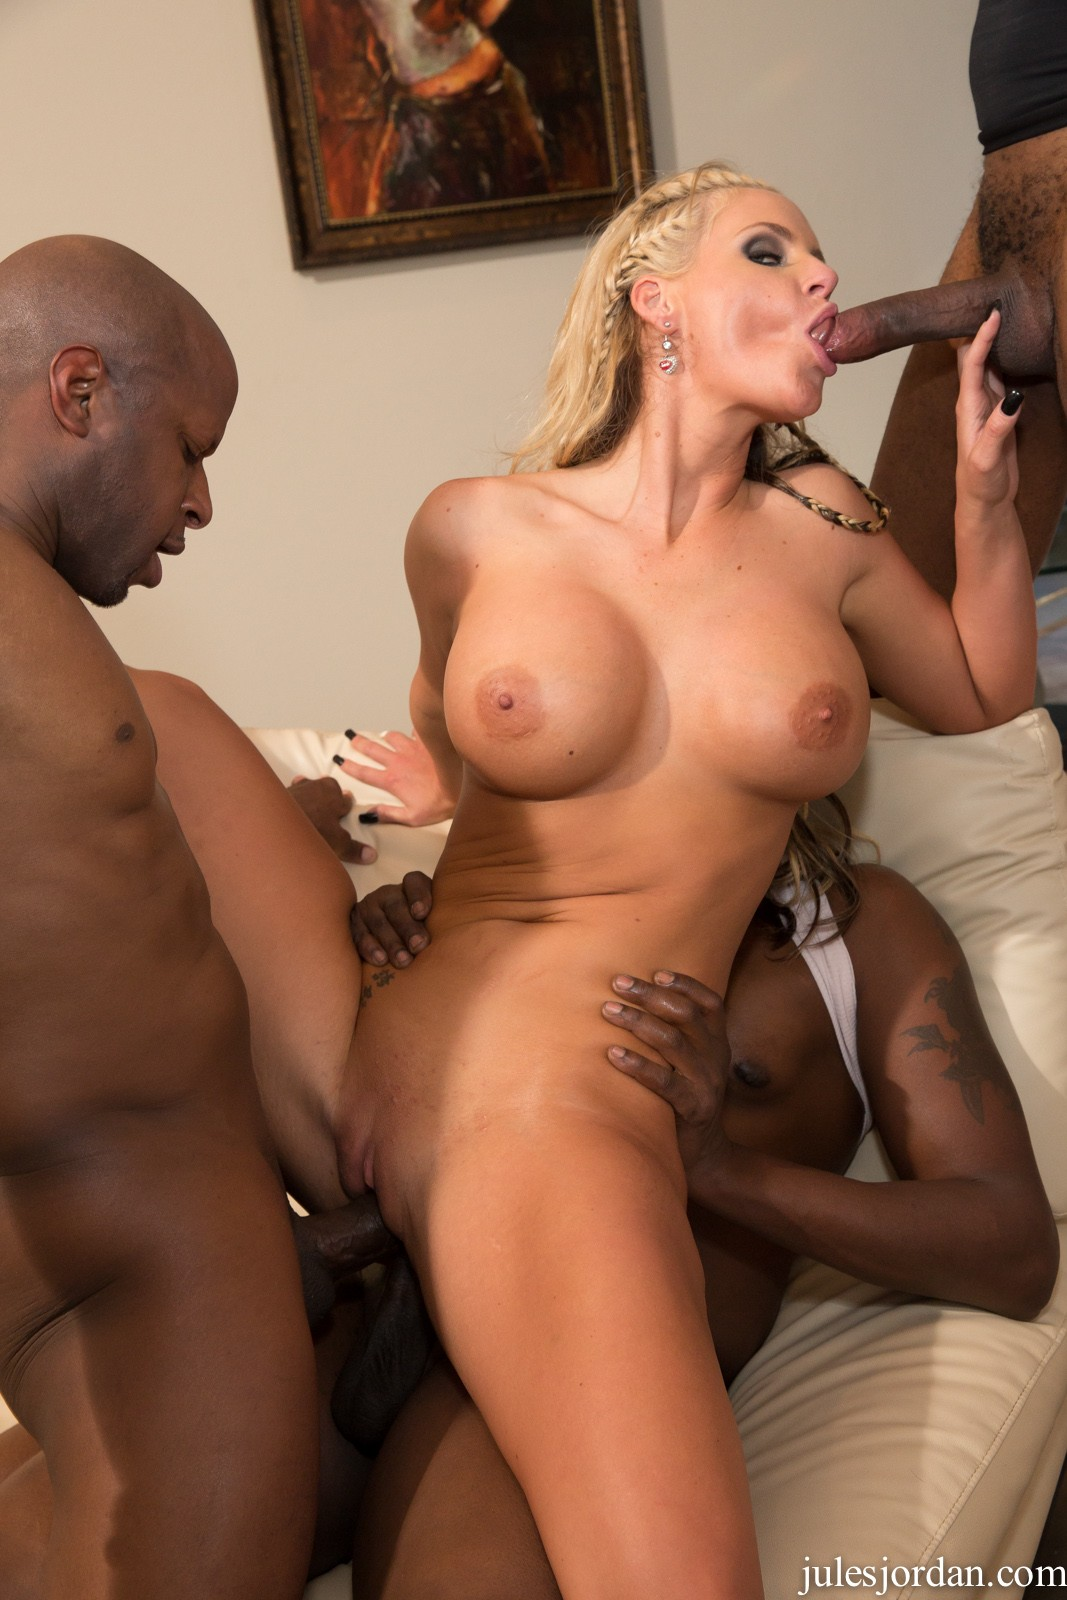 Movies of black men urinating naked xxx 8